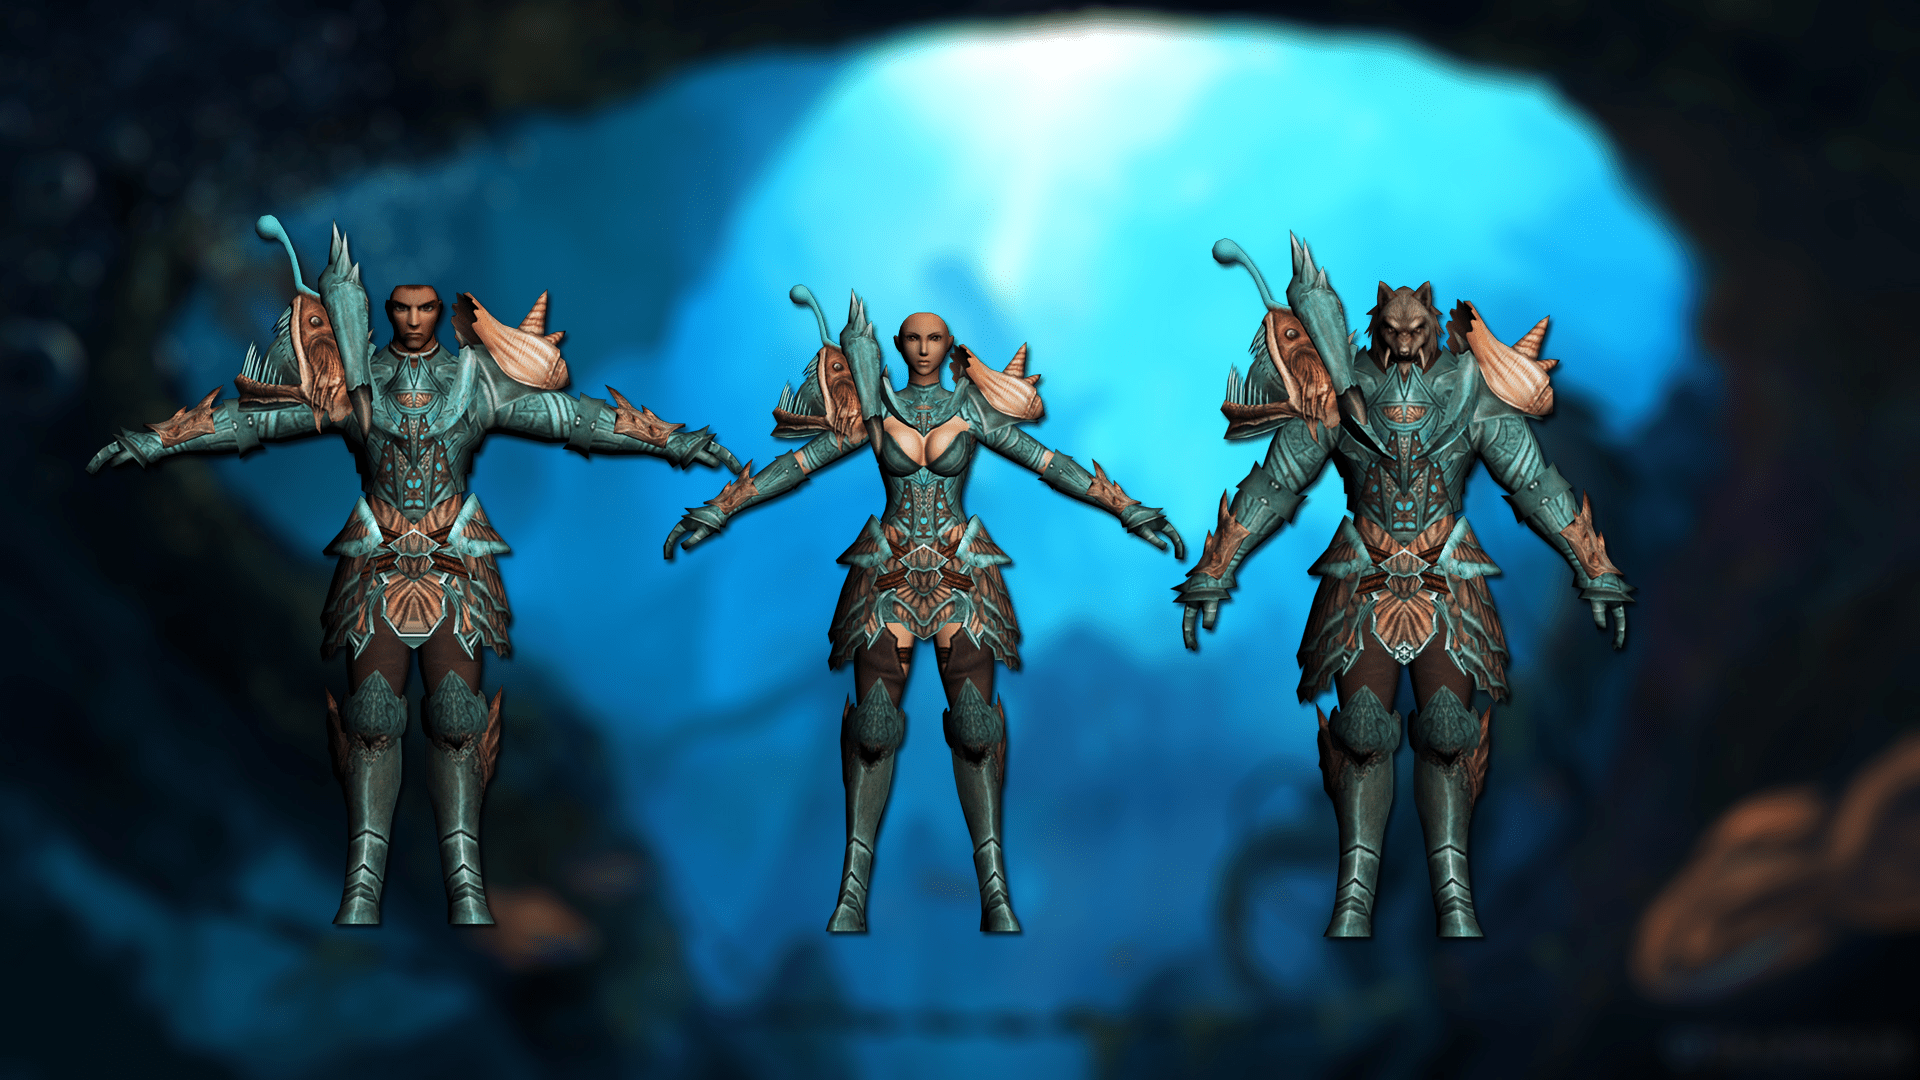 Water armors